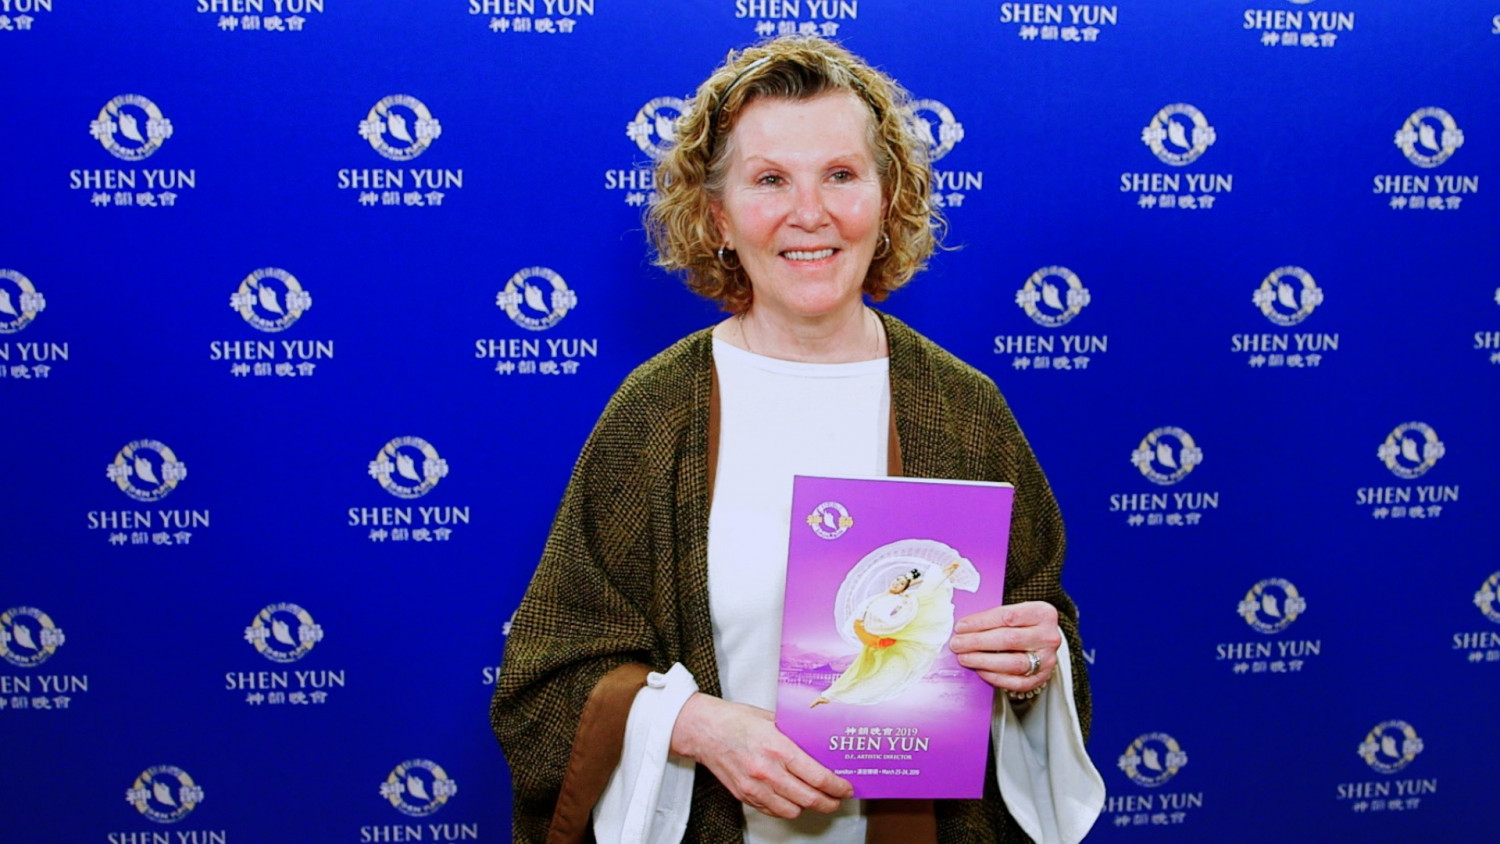 Shen Yun Brings the True Beauty of Humanity, Says CEO